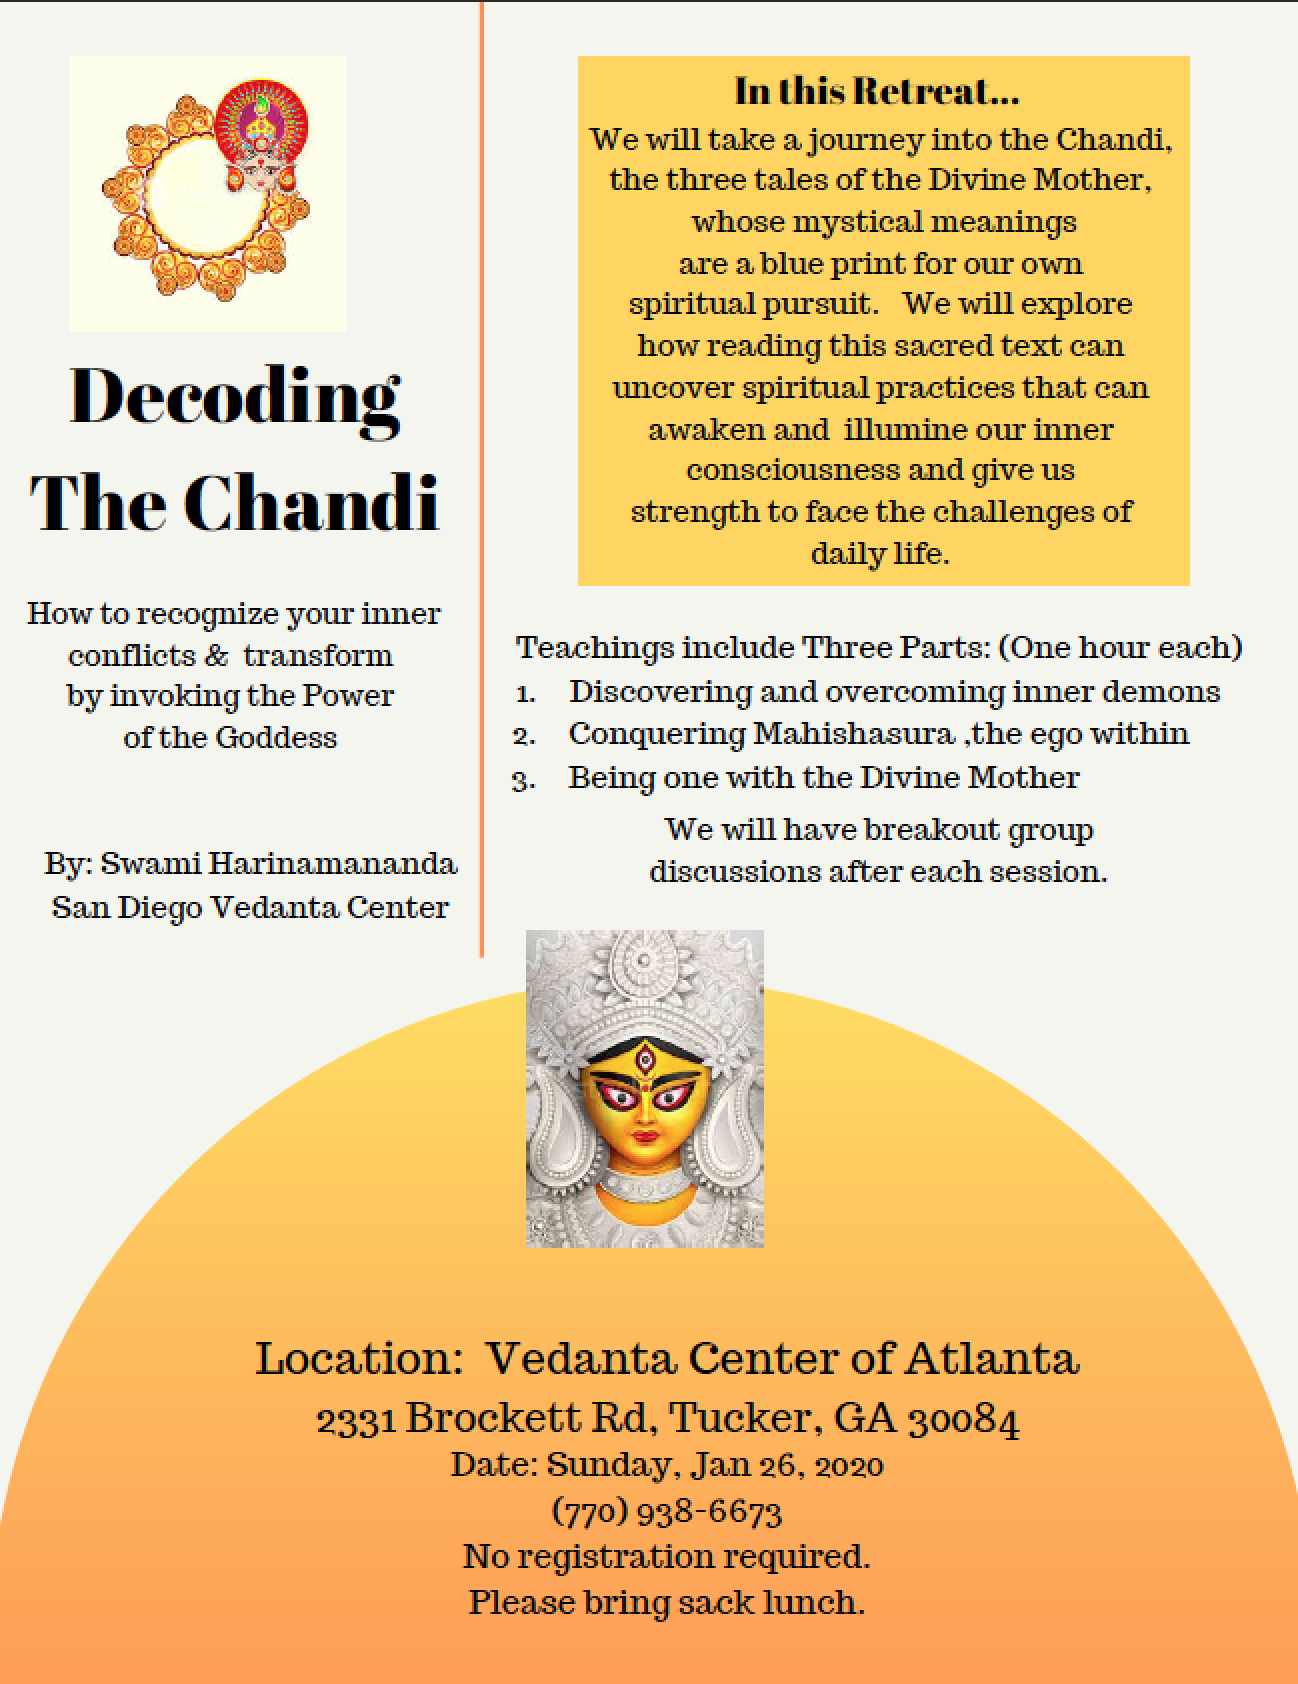 Decoding the Chandi flyer image link_